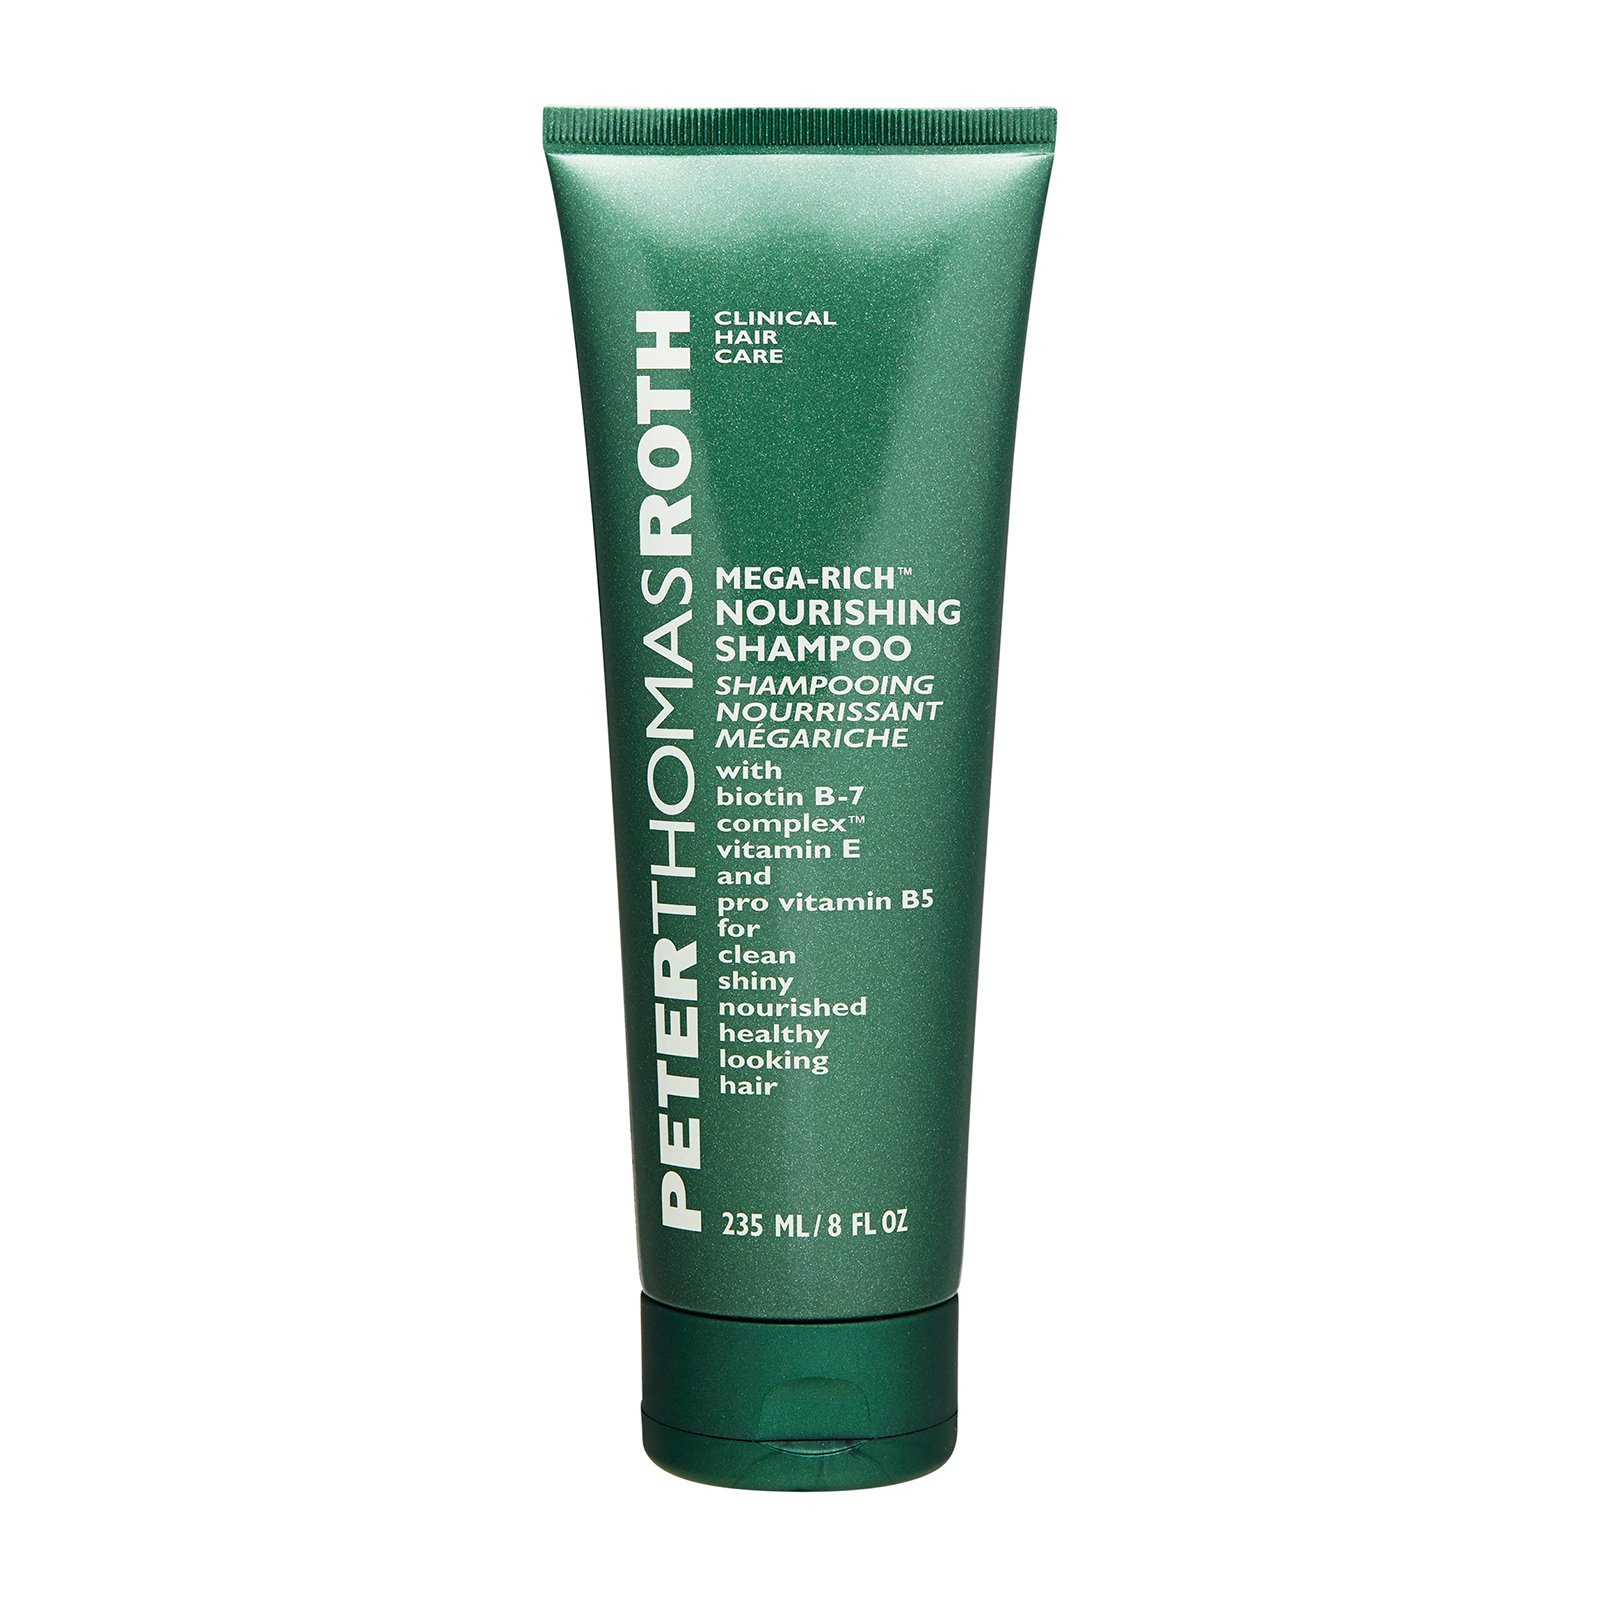 Peter Thomas Roth Mega-Rich Nourishing Shampoo 8.5oz, 250ml